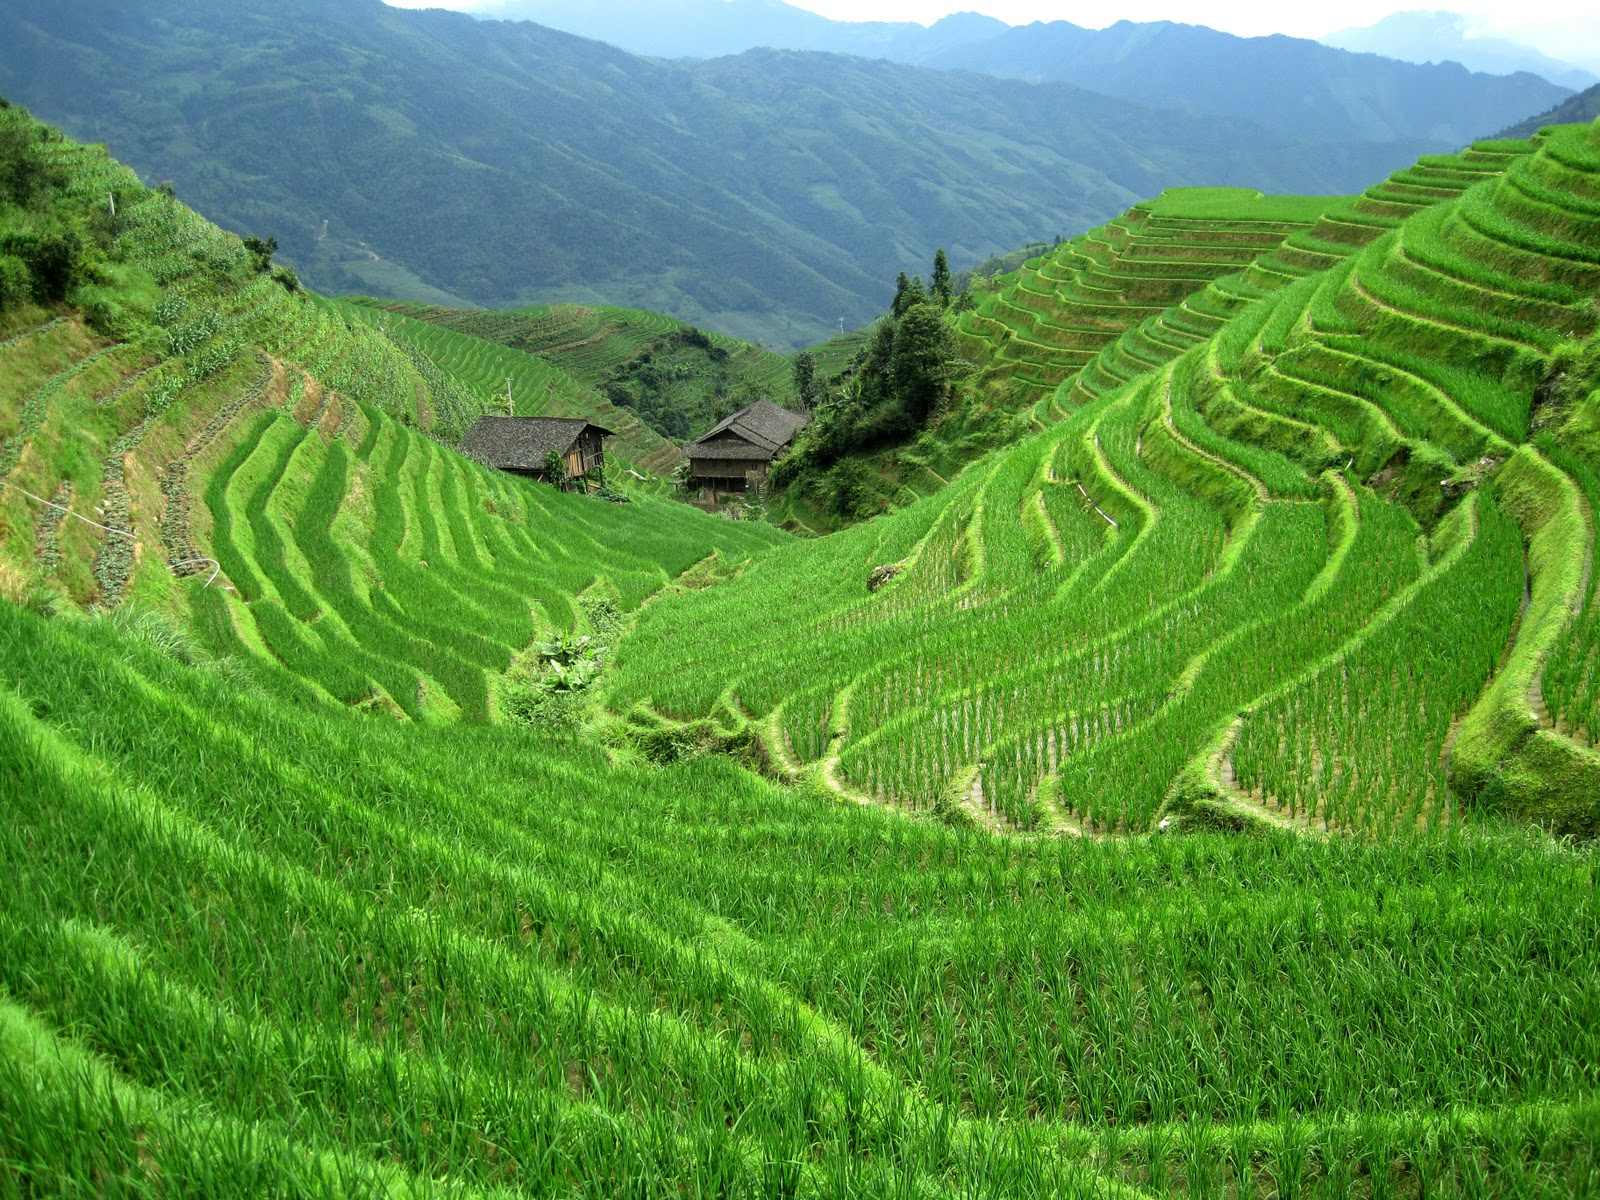 Terrace Farming - Rice - Japan